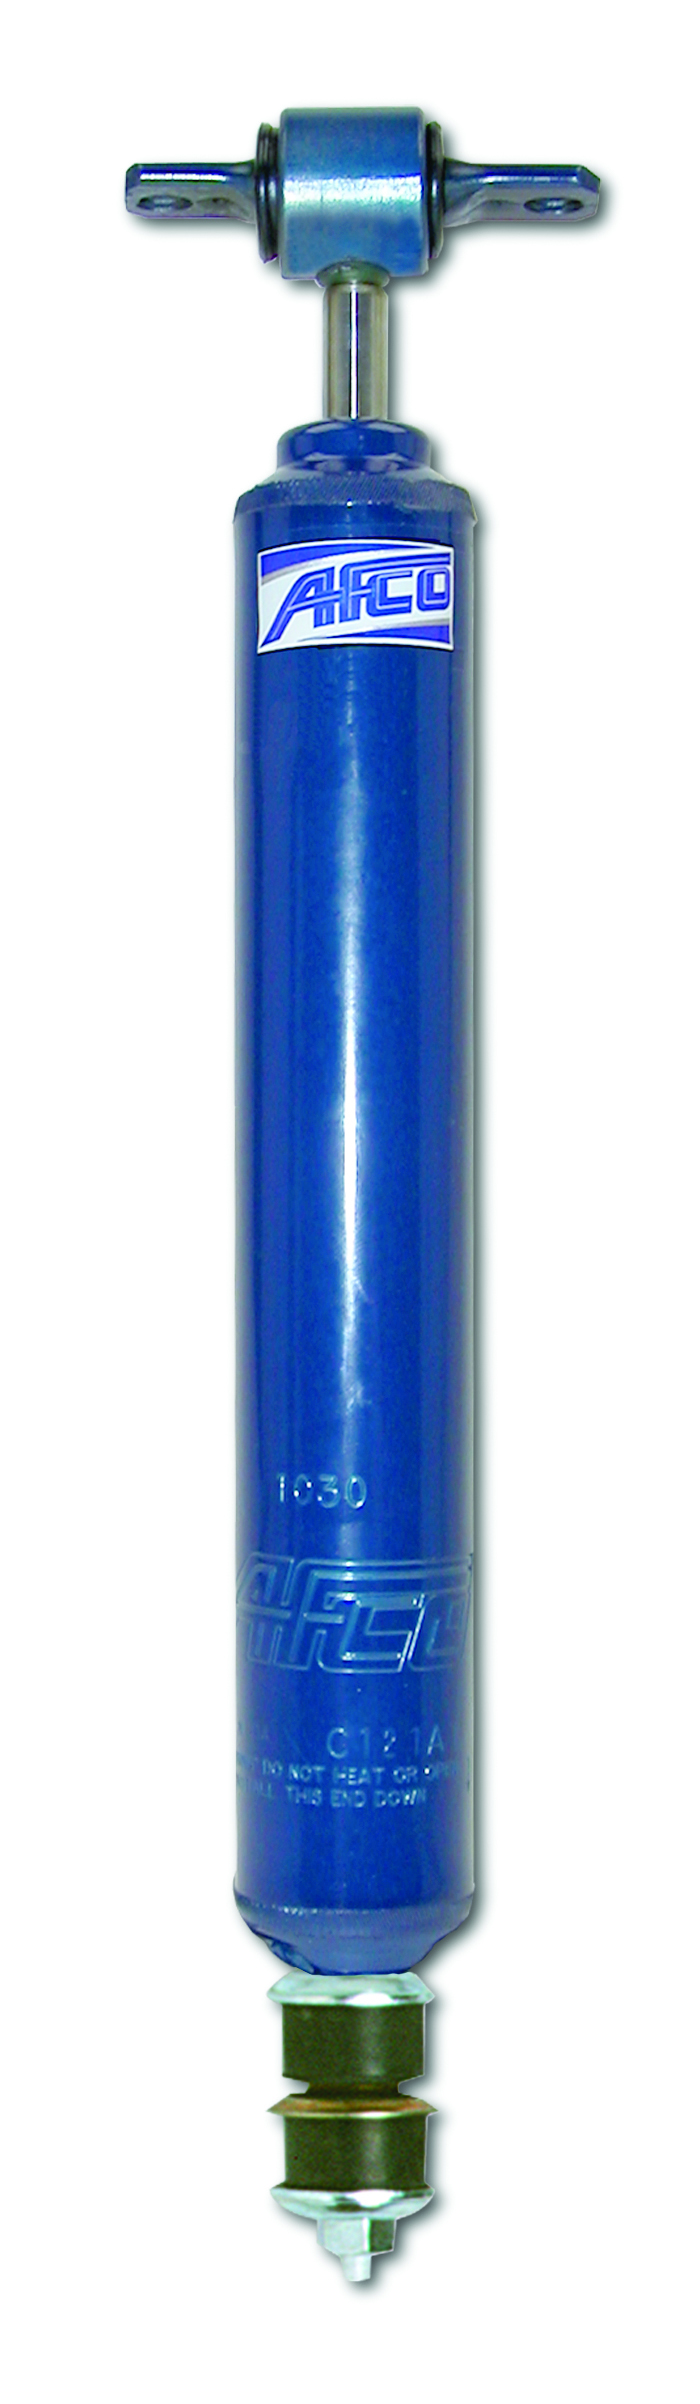 AFCO Racing Products 1033 Shock, 10 Series, Twintube, 14.50 in Compressed / 22.50 in Extended, 2.02 in OD, 6-6 Valve, Steel, Blue Paint, GM F-Body 1970-81, Each